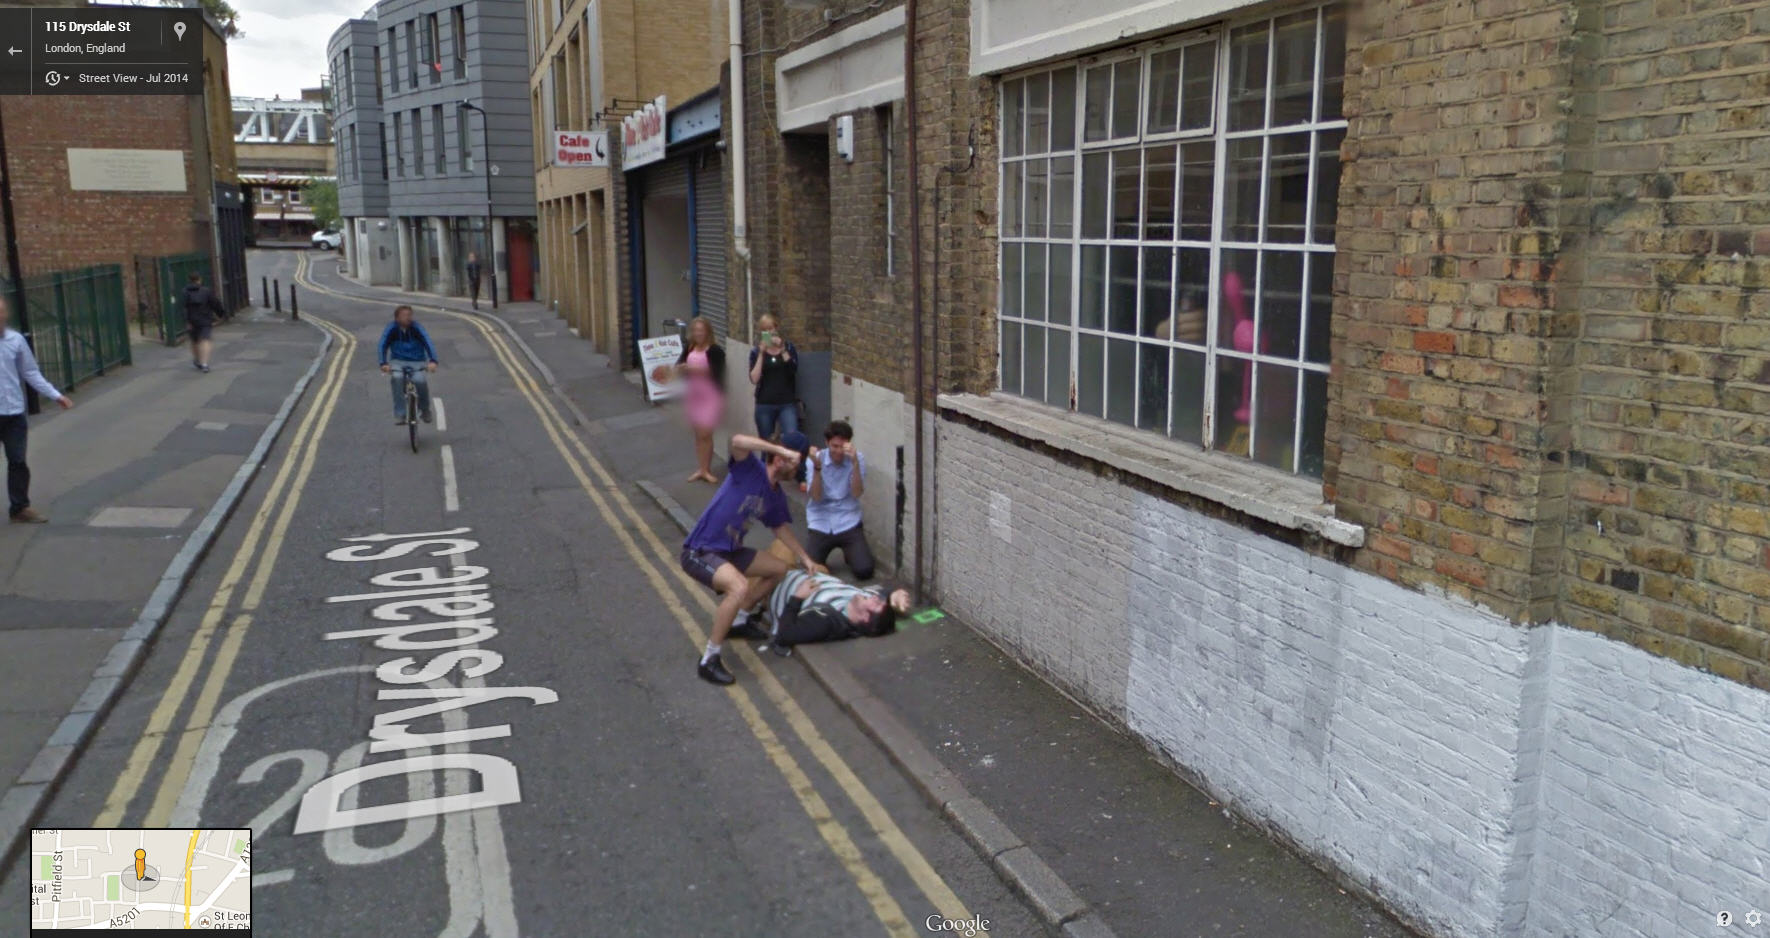 Google Street View Captures A Mugging On A Uk Street Google